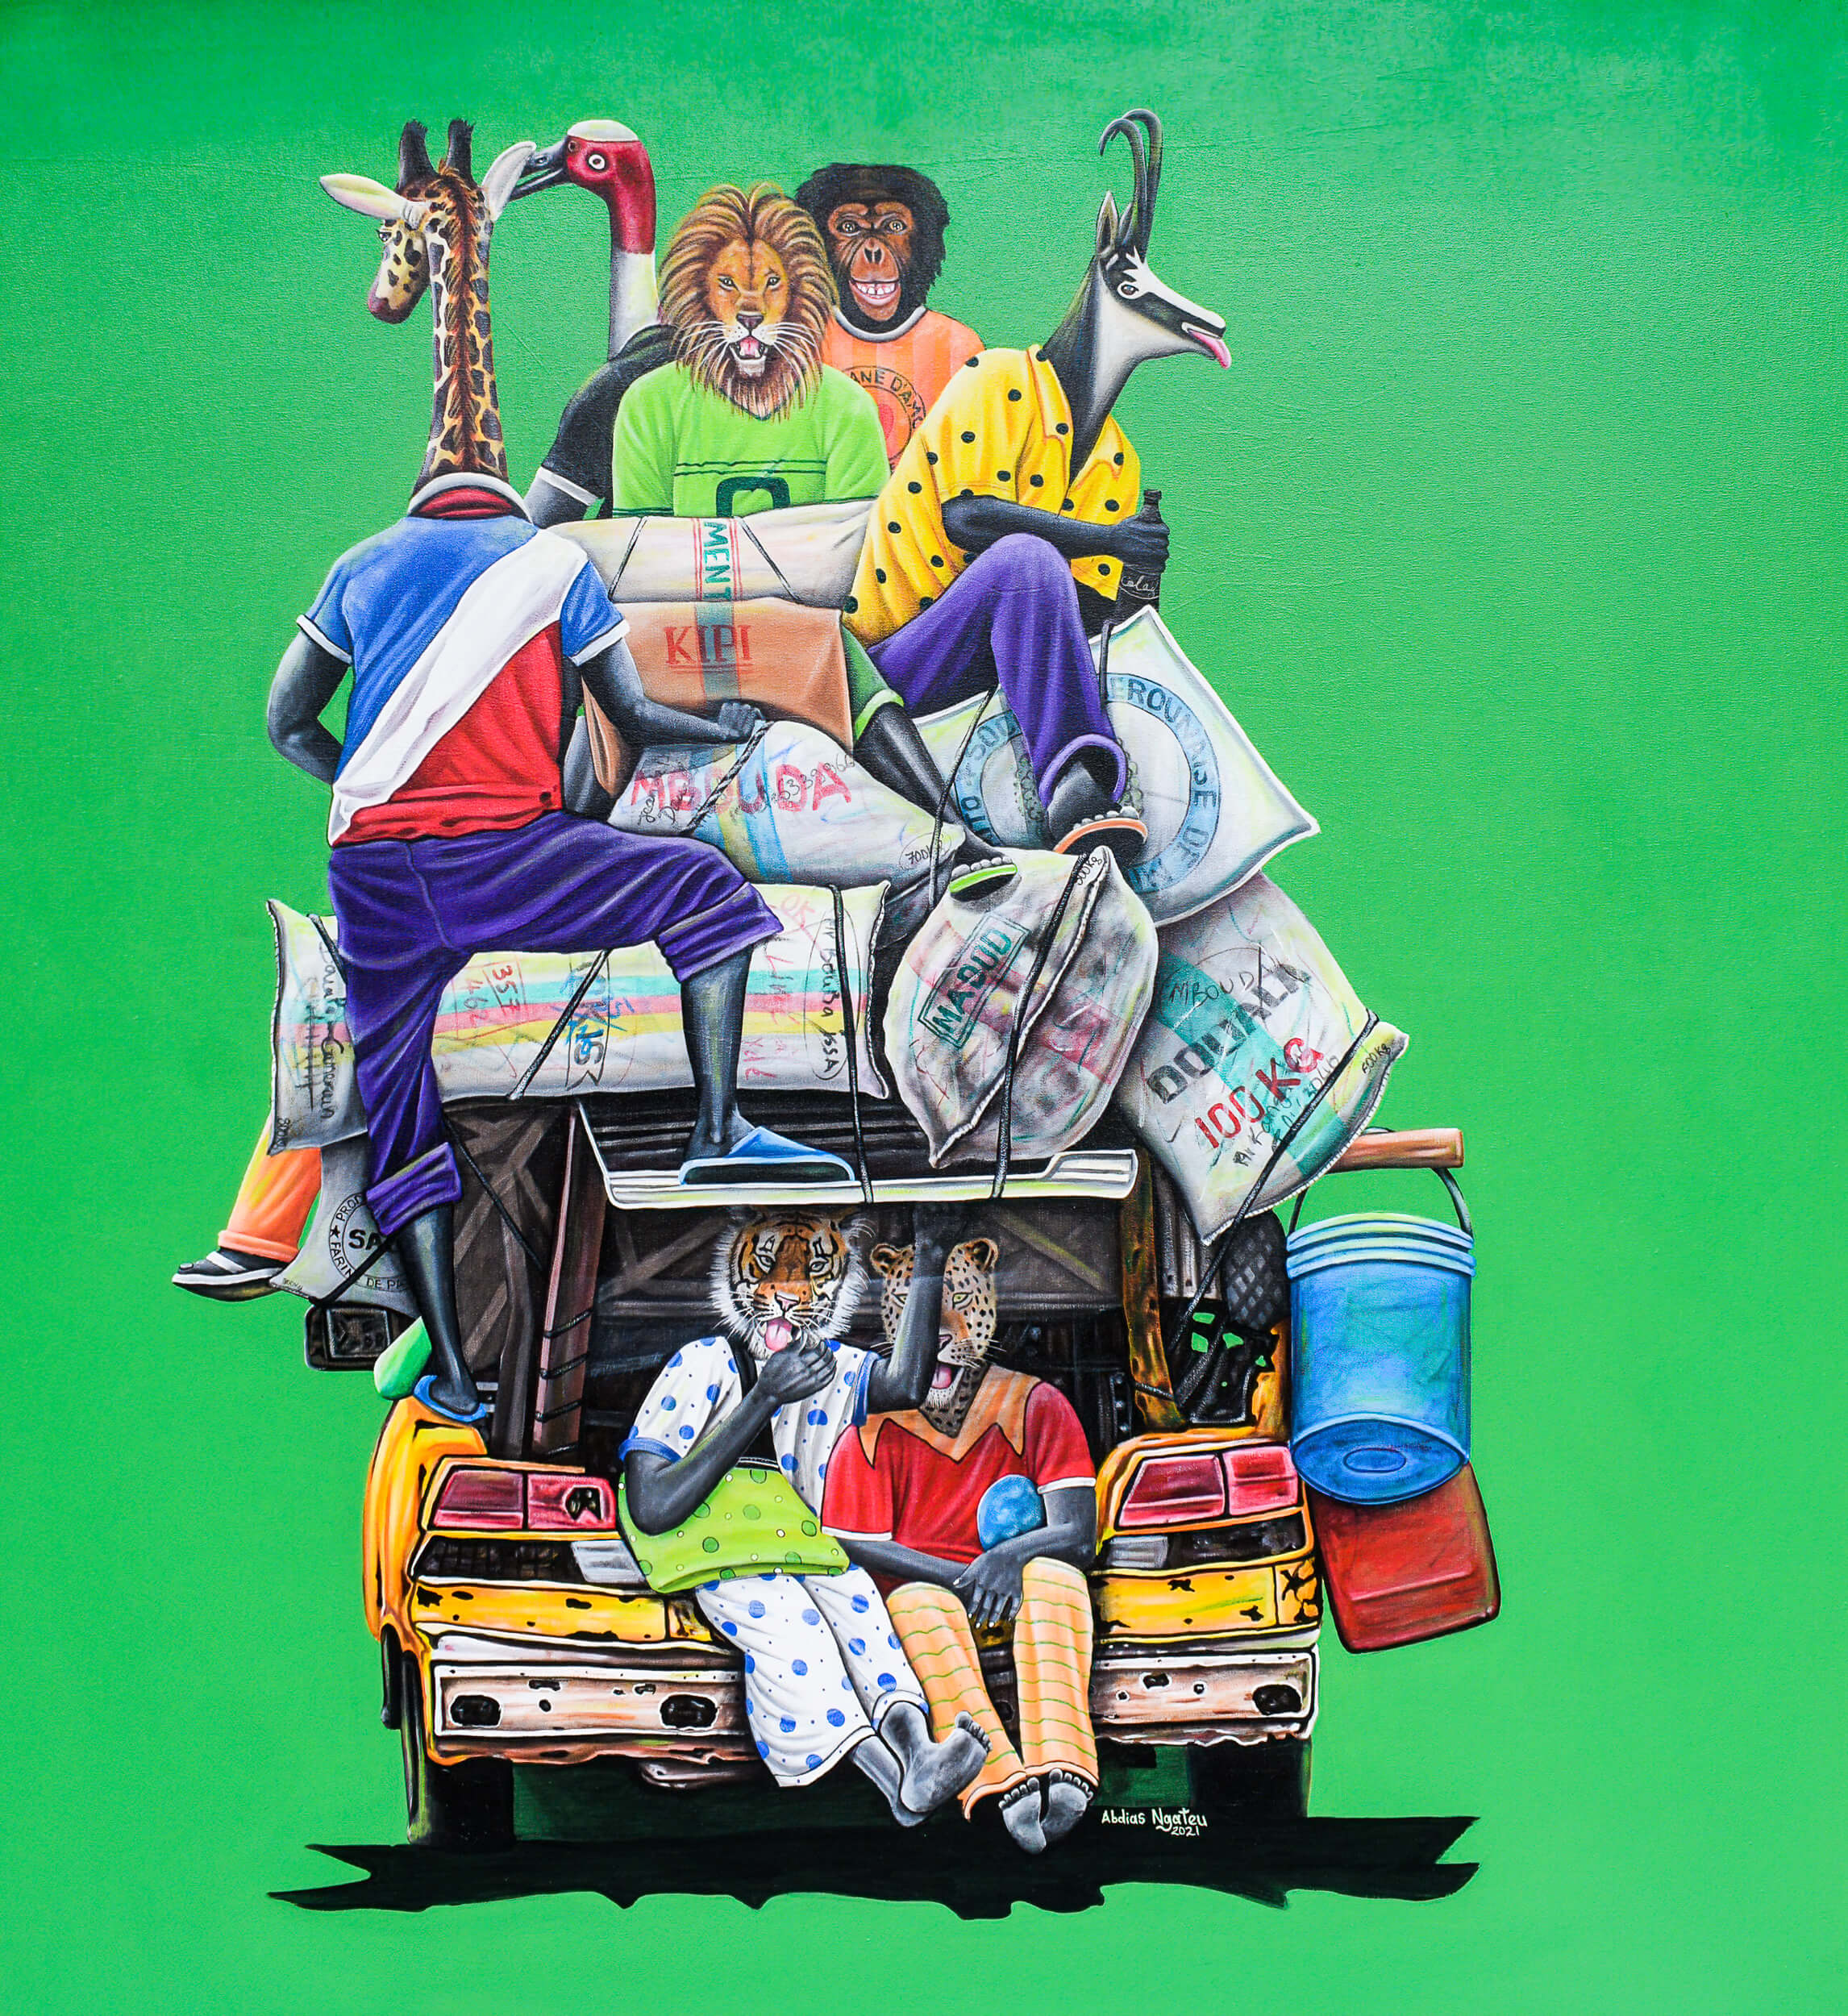 artsy-Abdias Ngateu - l'Opep - 2021 - 150cm H x 140cm W - Acrylic on canvas - Courtesy by OOA Gallery-Modifier-2103